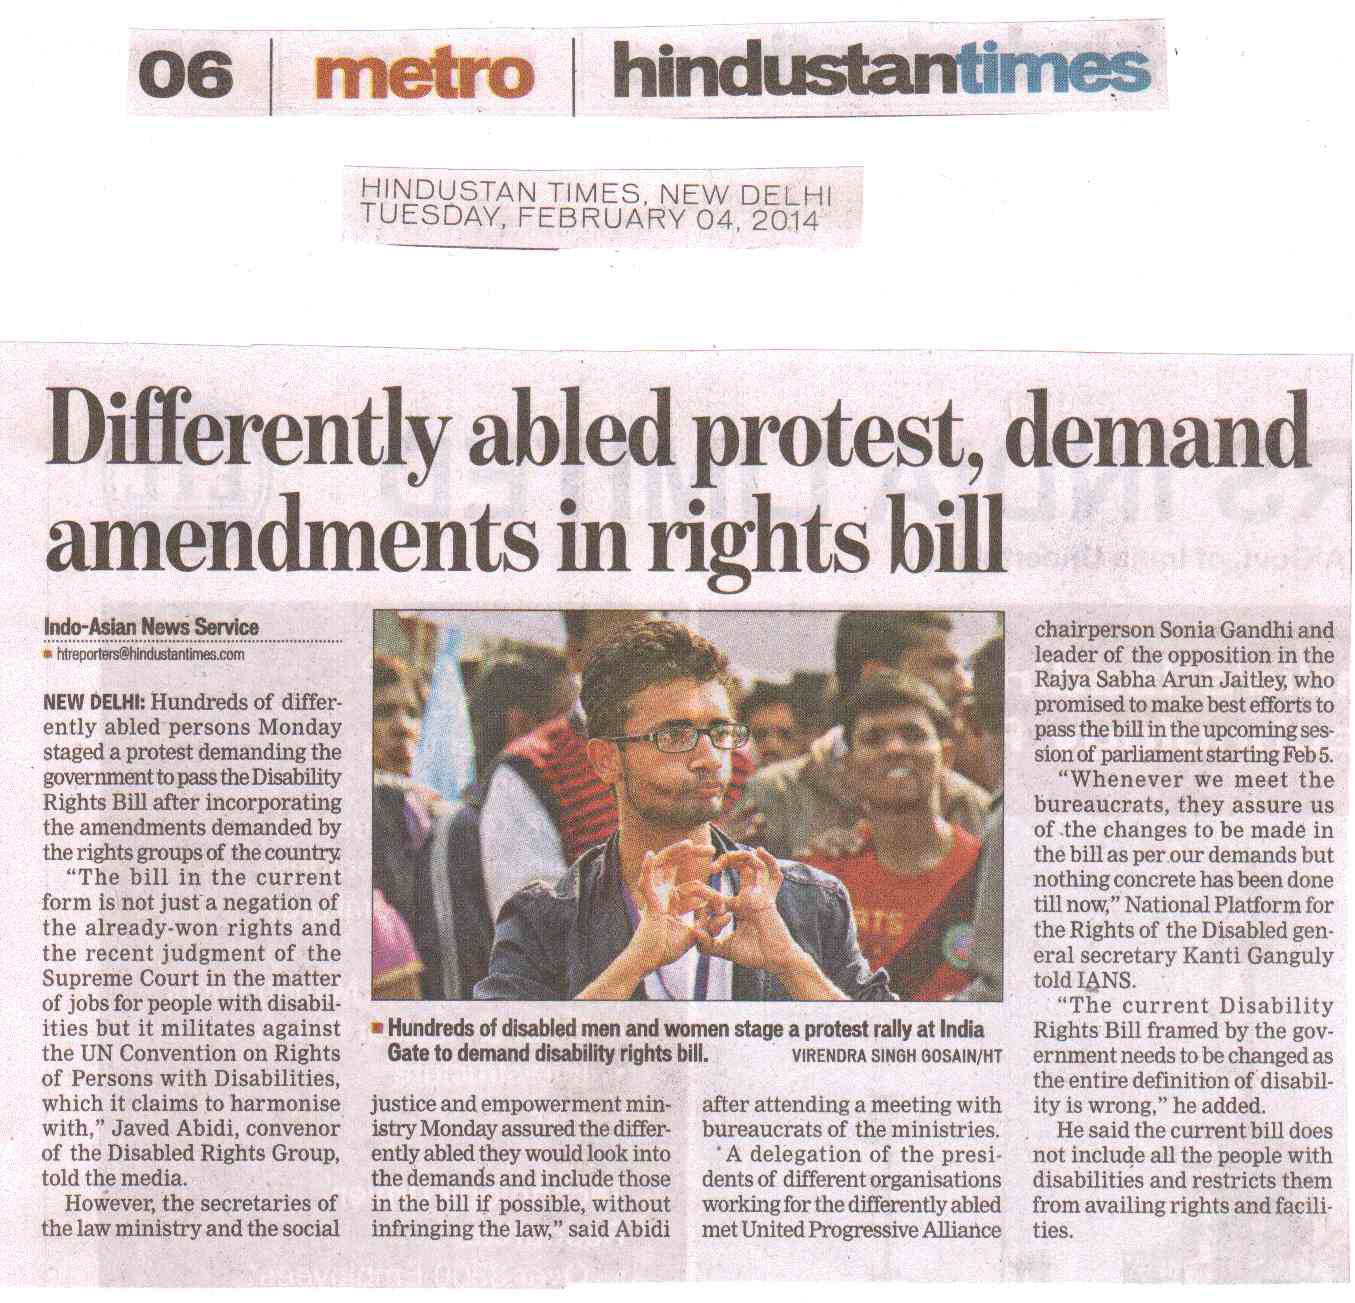 Differently abled protest, demand amendments in rights bill